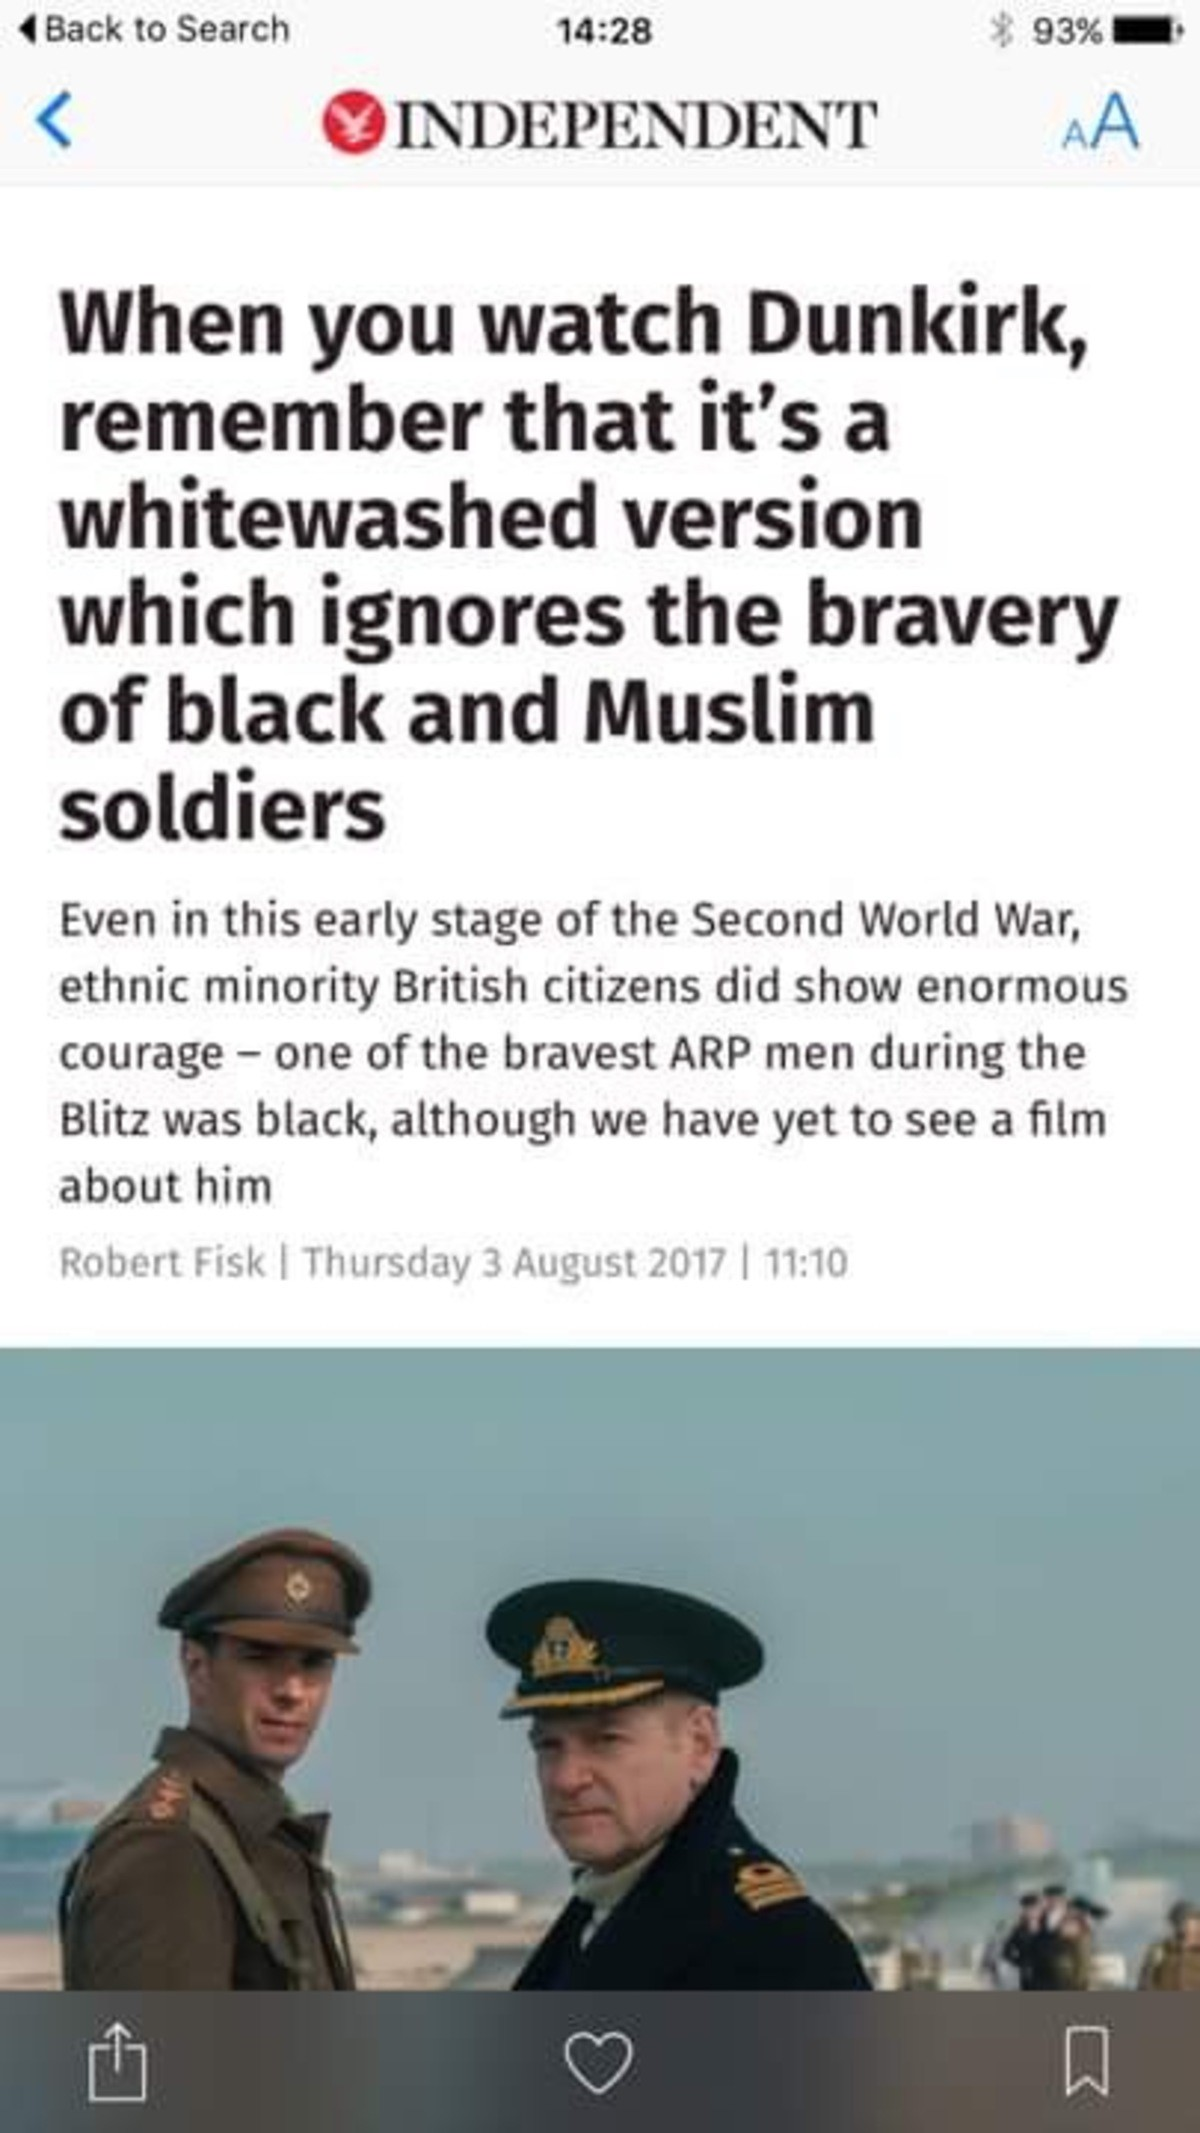 The independent are ing trash. . 4 to Search was t an - when you watch Dunkirk, remember that it' s a whitewashed version which ignores the bravery of black and